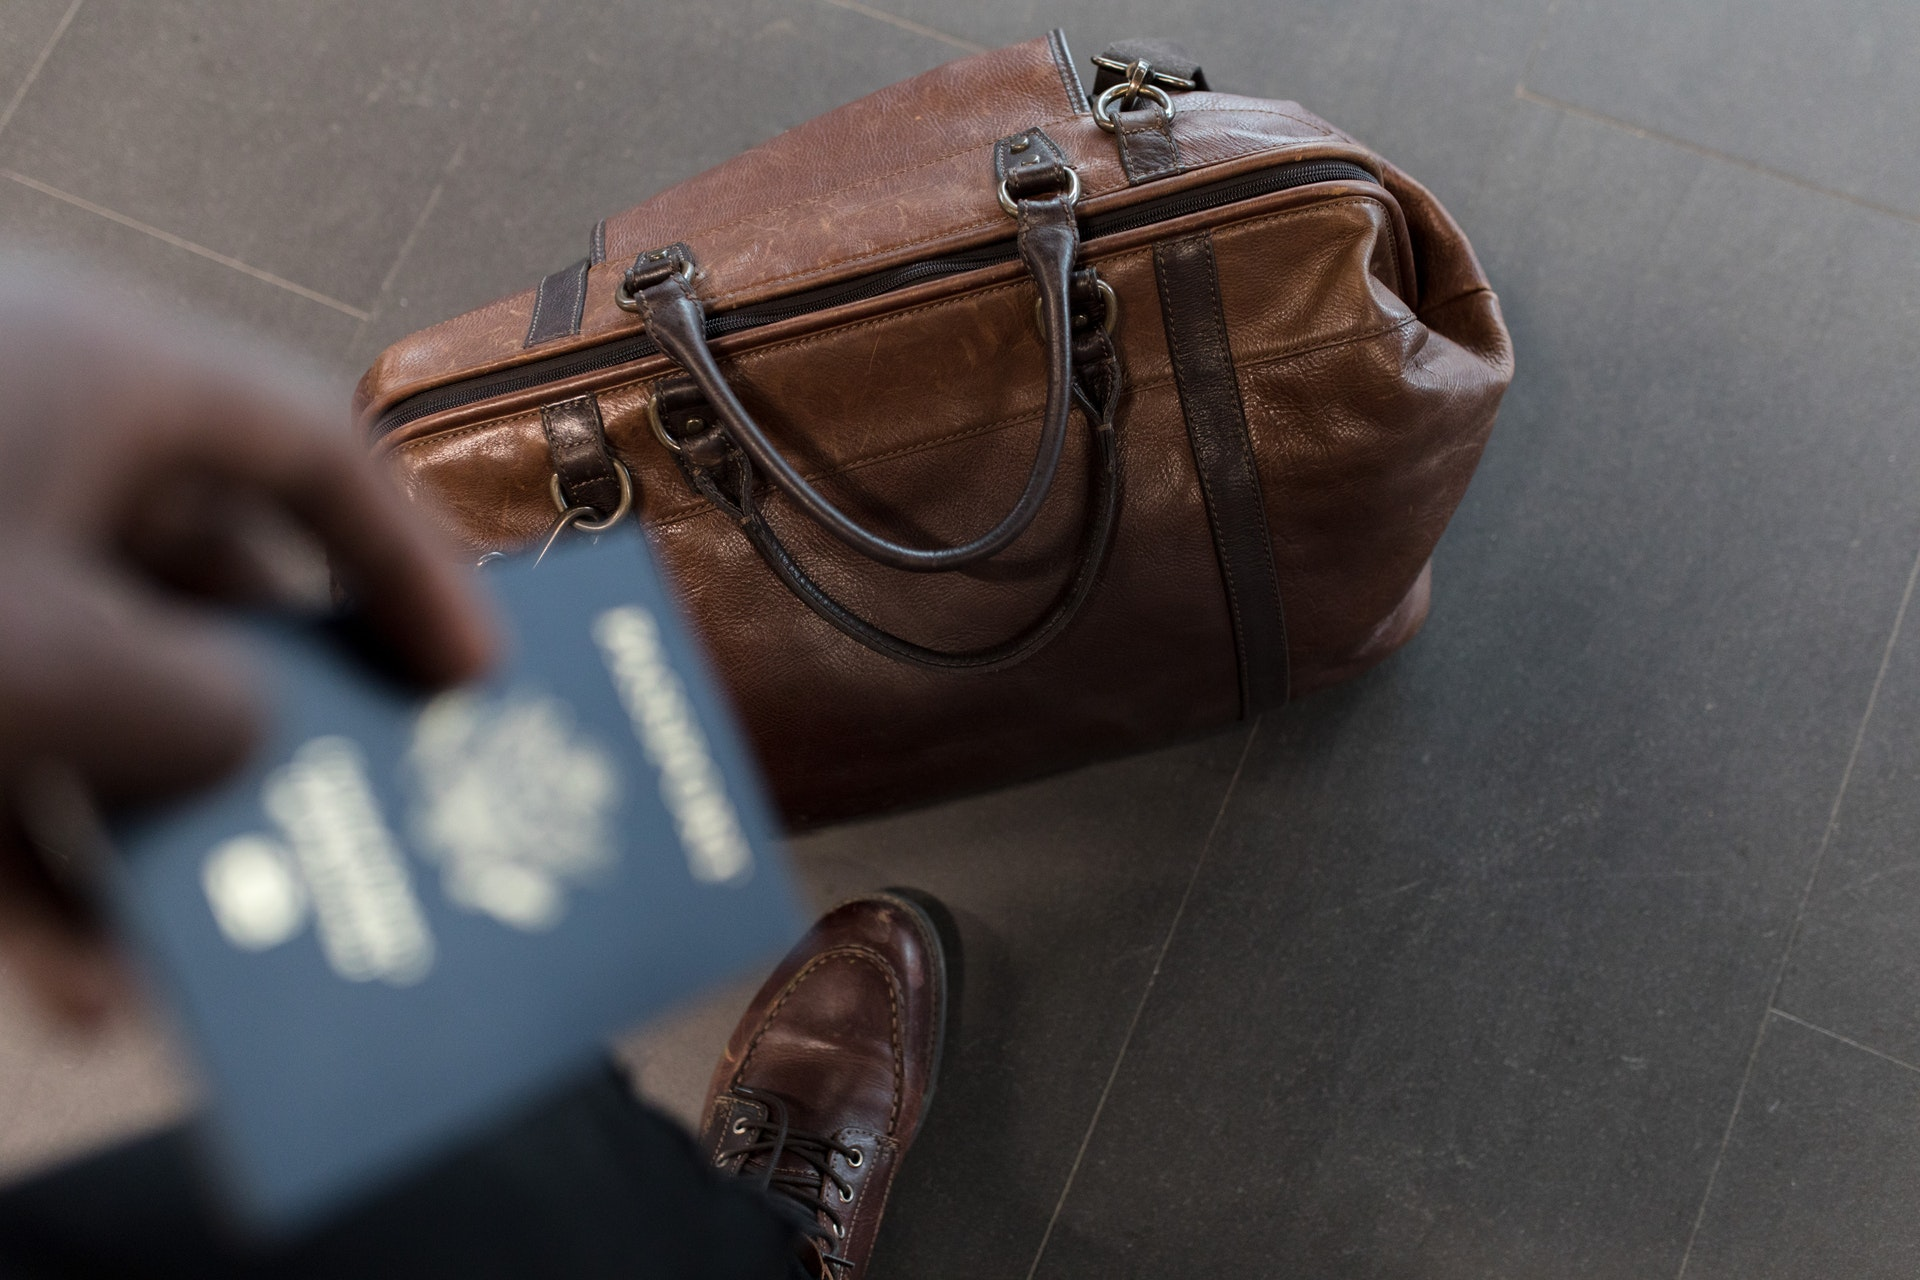 Traveler with passport and brown leather duffel bag in focus